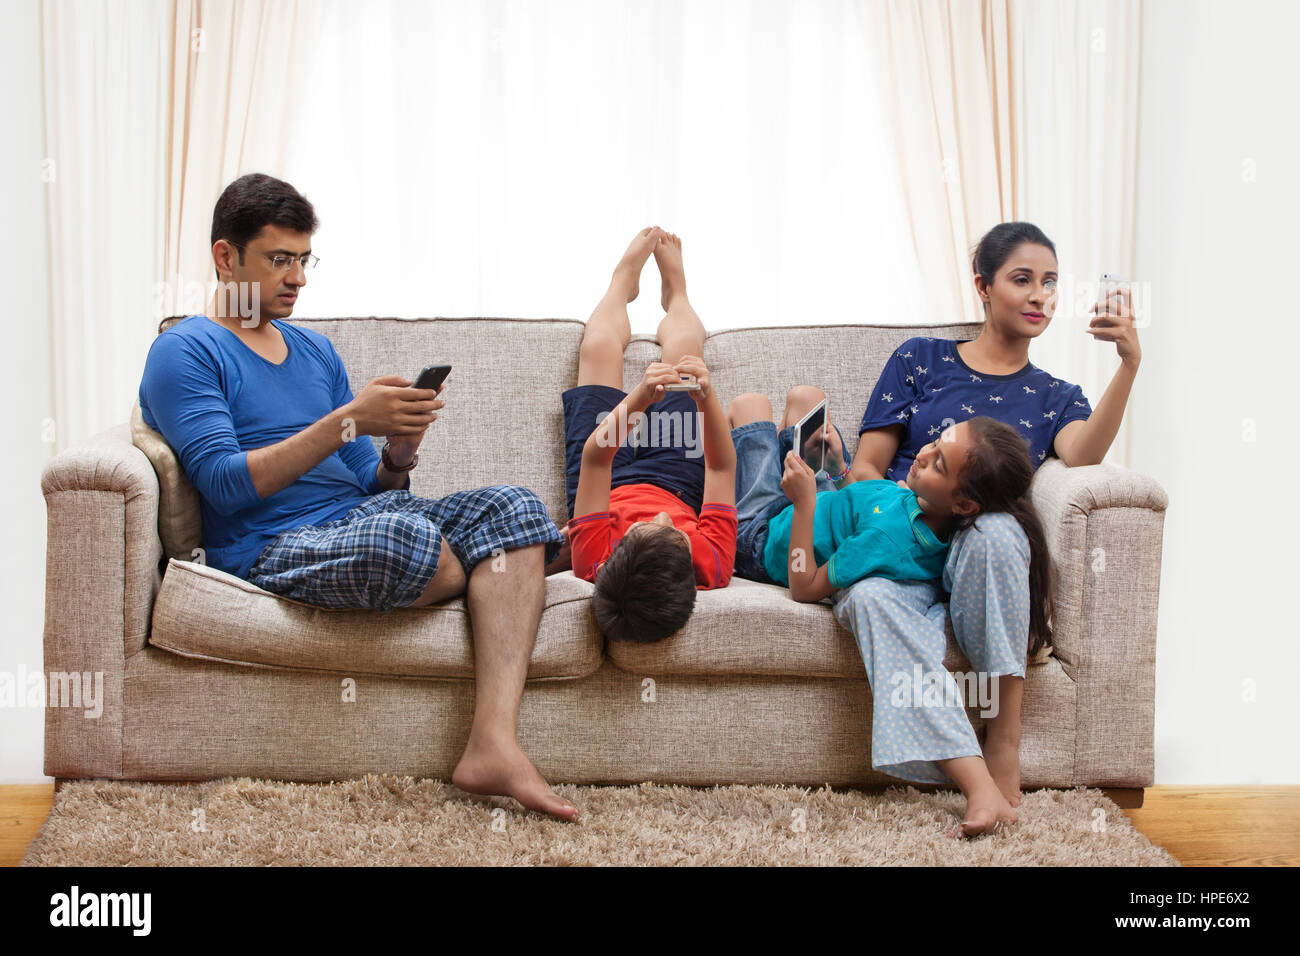 Family using cell phones and digital tablets in living room - Stock Image